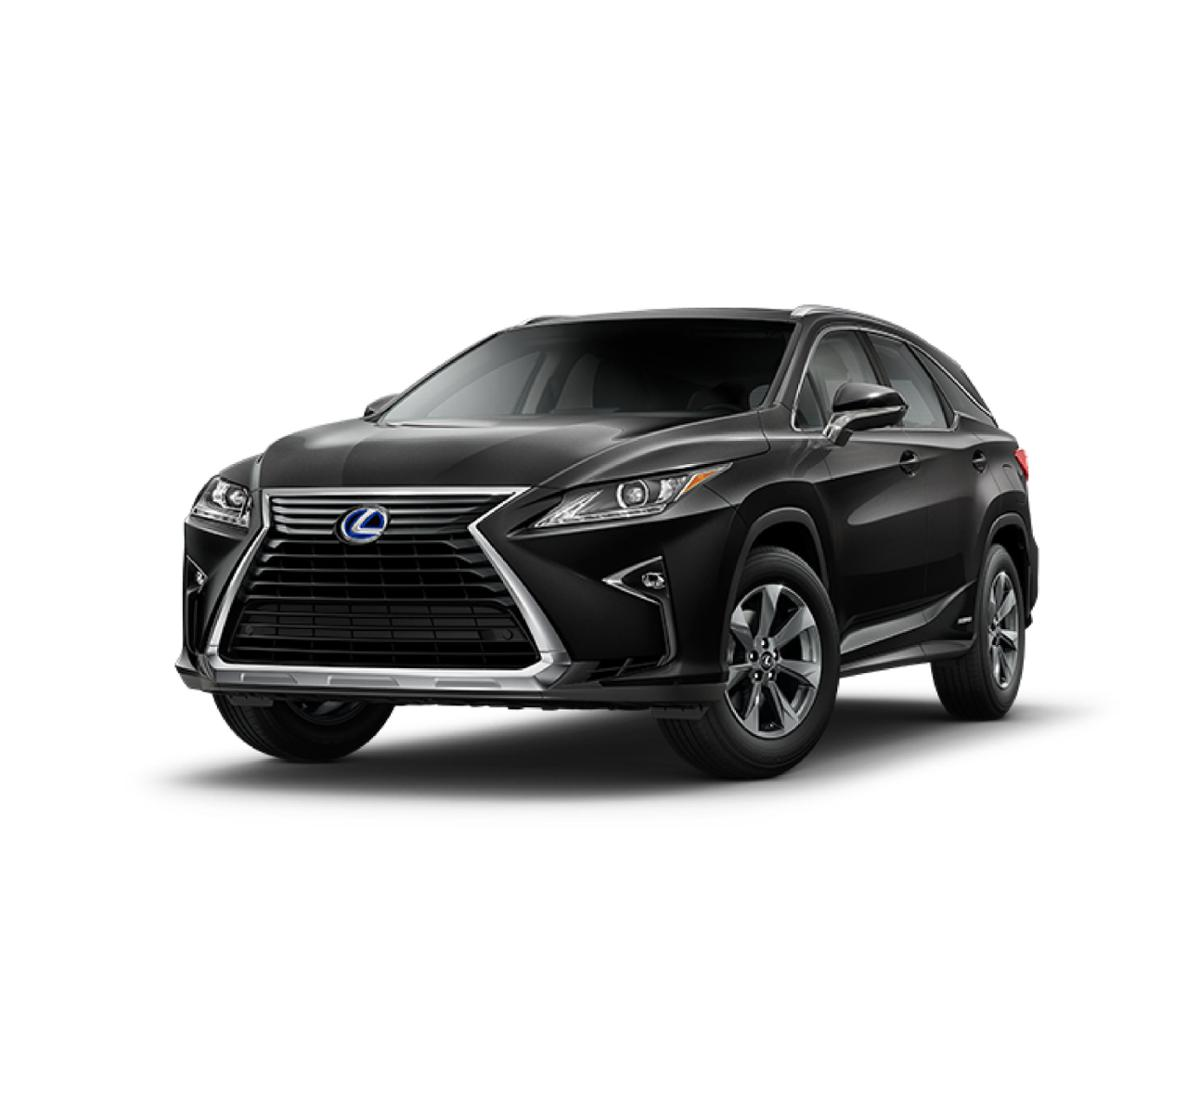 2018 Lexus RX 450hL Vehicle Photo in Dallas, TX 75209